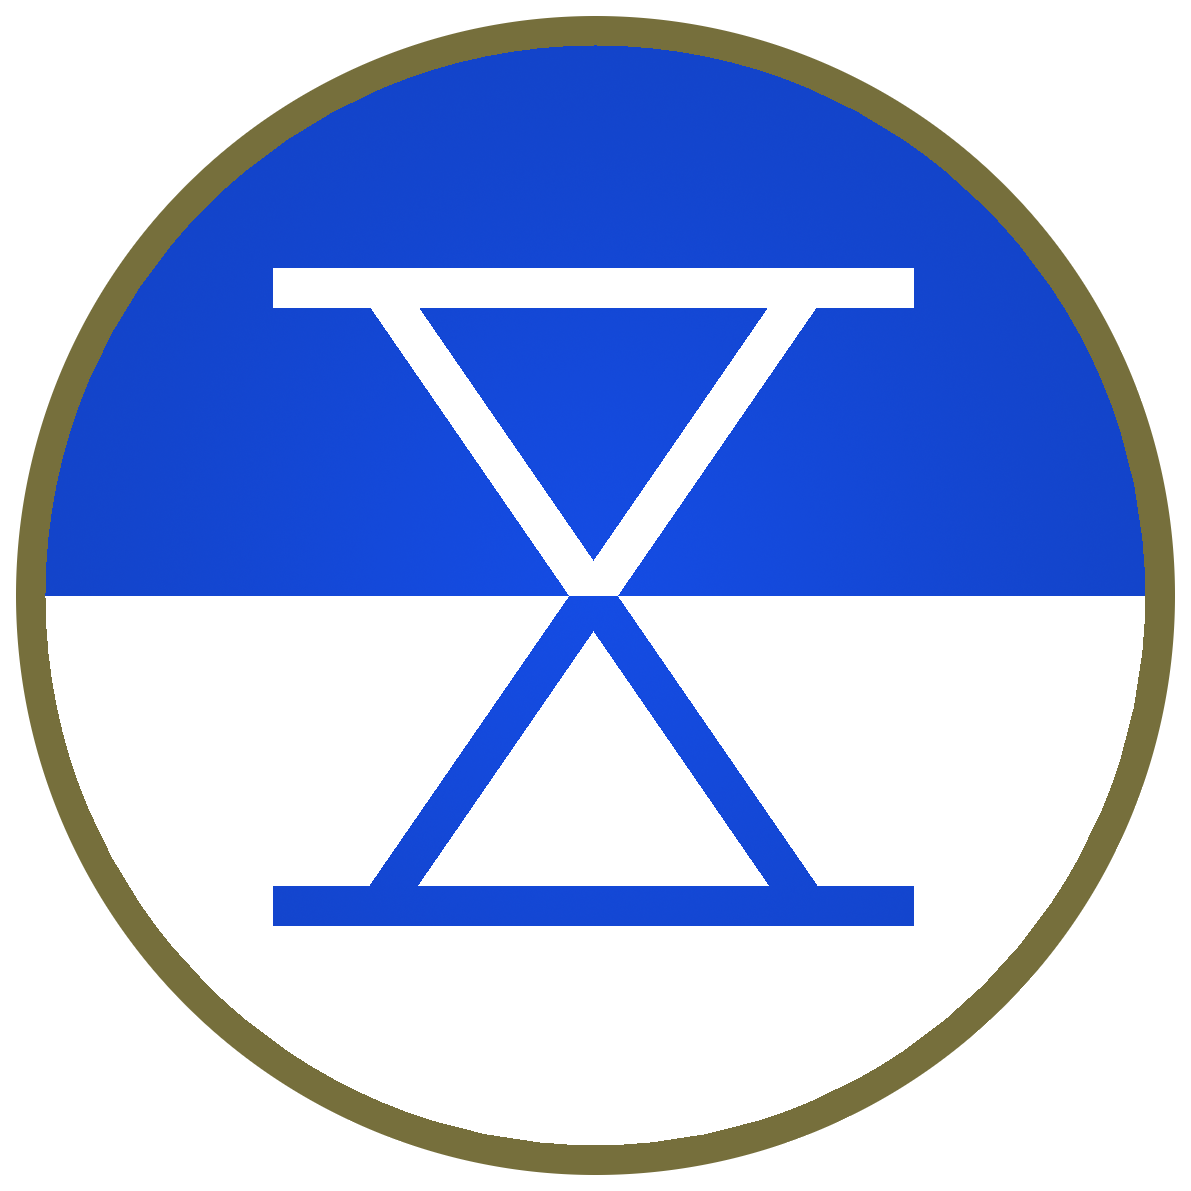 10: X Corps (United States)